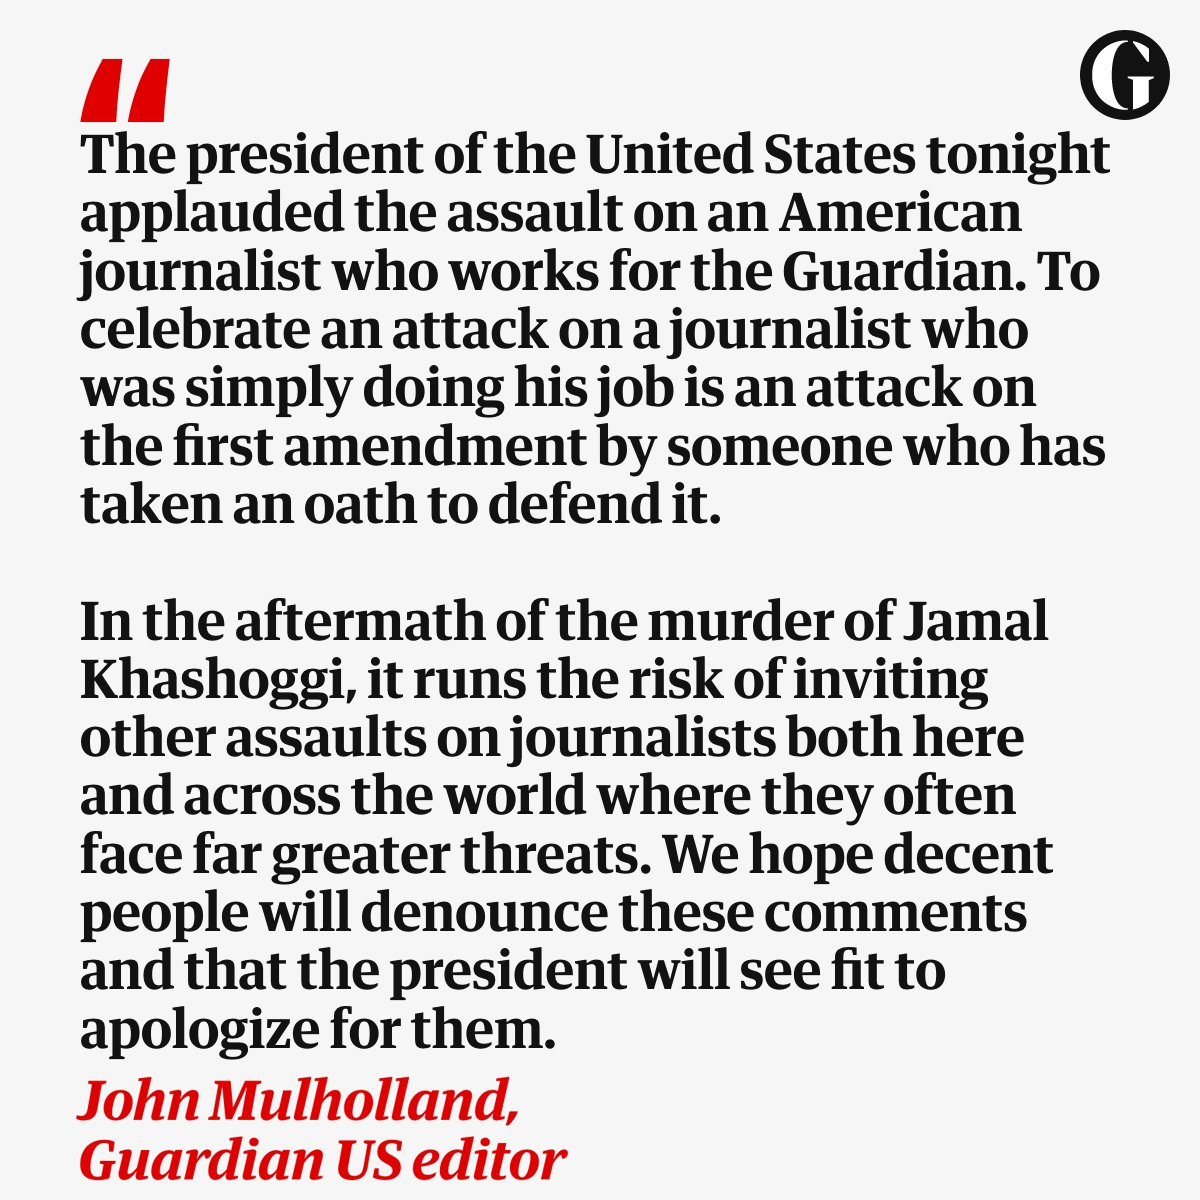 This is the response from @GuardianUS to the president of the United States openly and directly praising a violent act against a journalist on American soil https://t.co/h9t3JVeN56